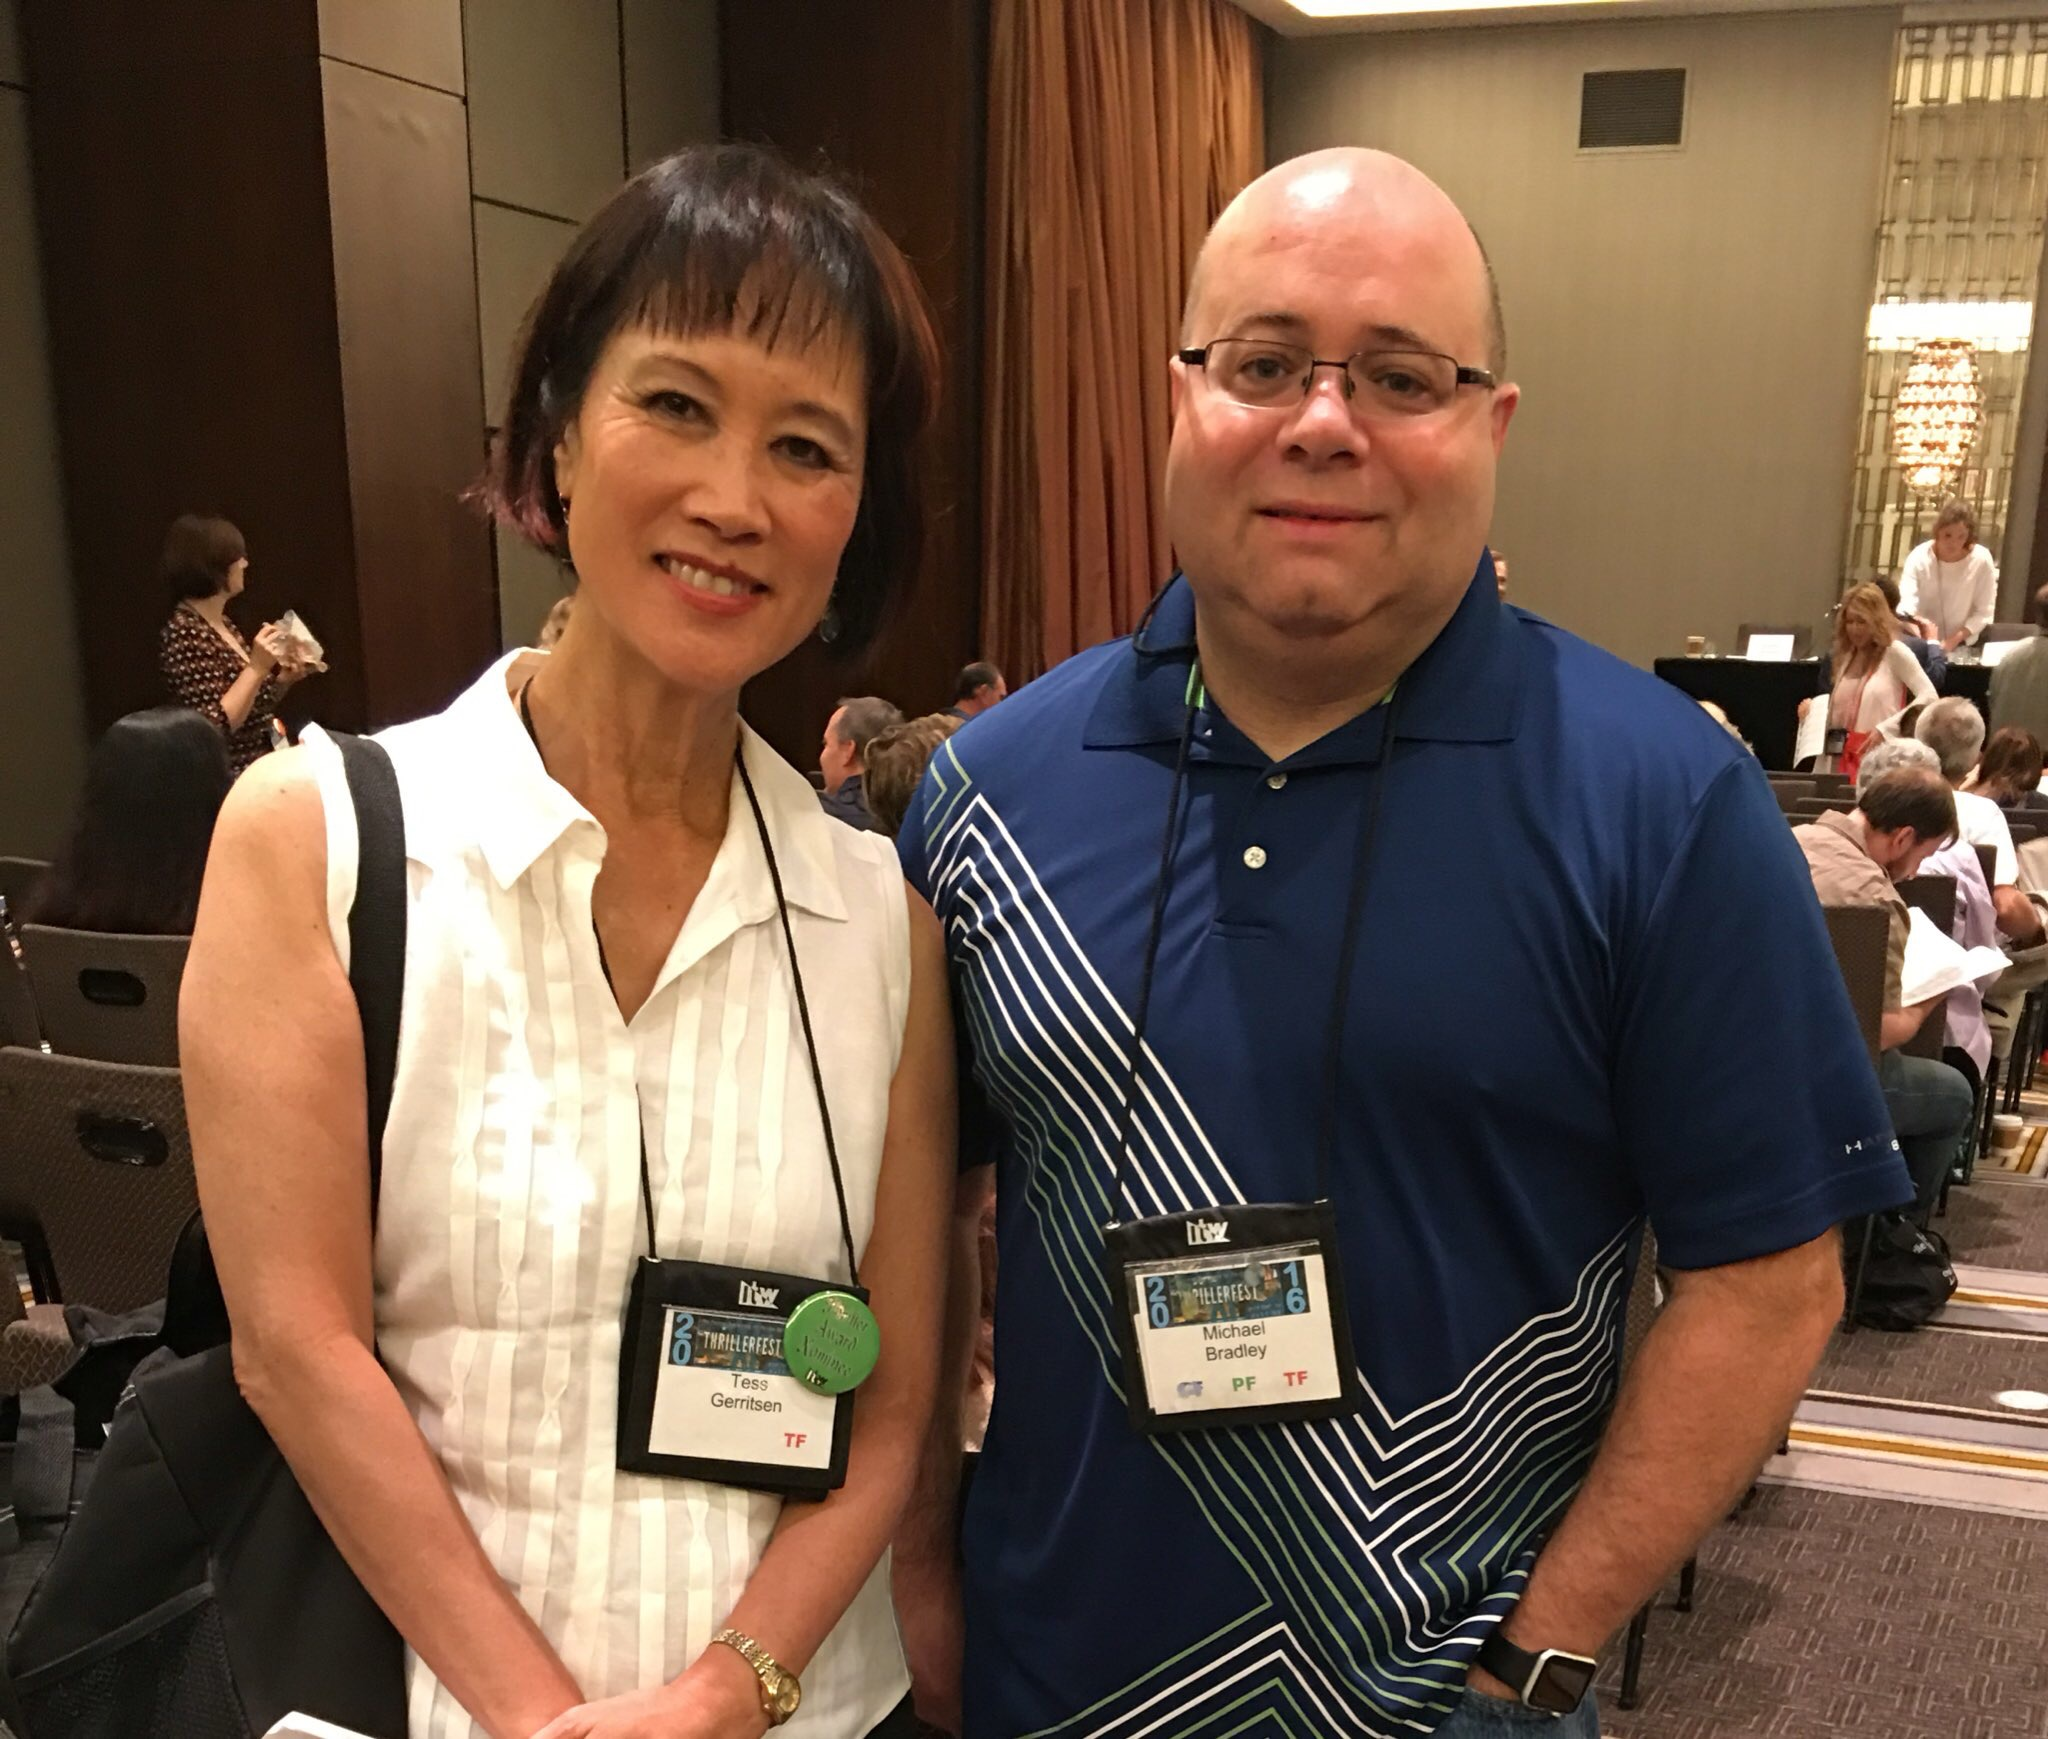 With Tess Gerritsen